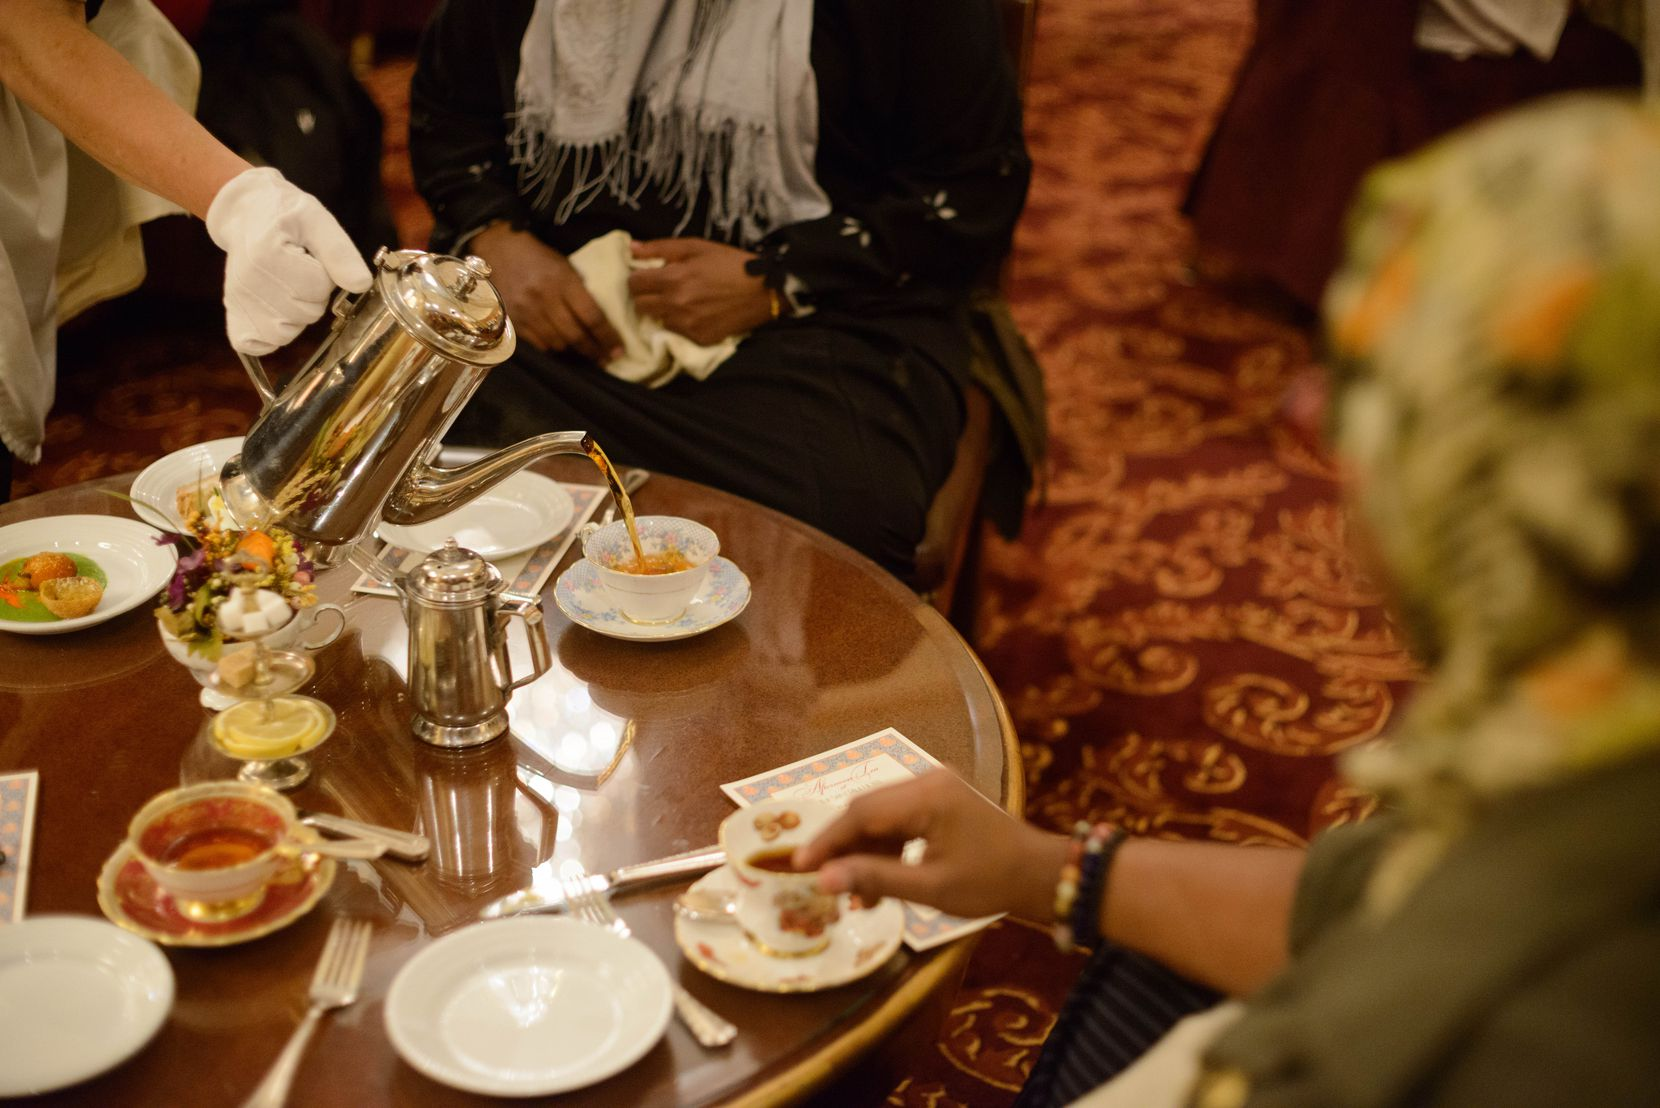 The Saint Paul Hotel, which consists of 255 rooms and suites, offers a five-course afternoon tea.